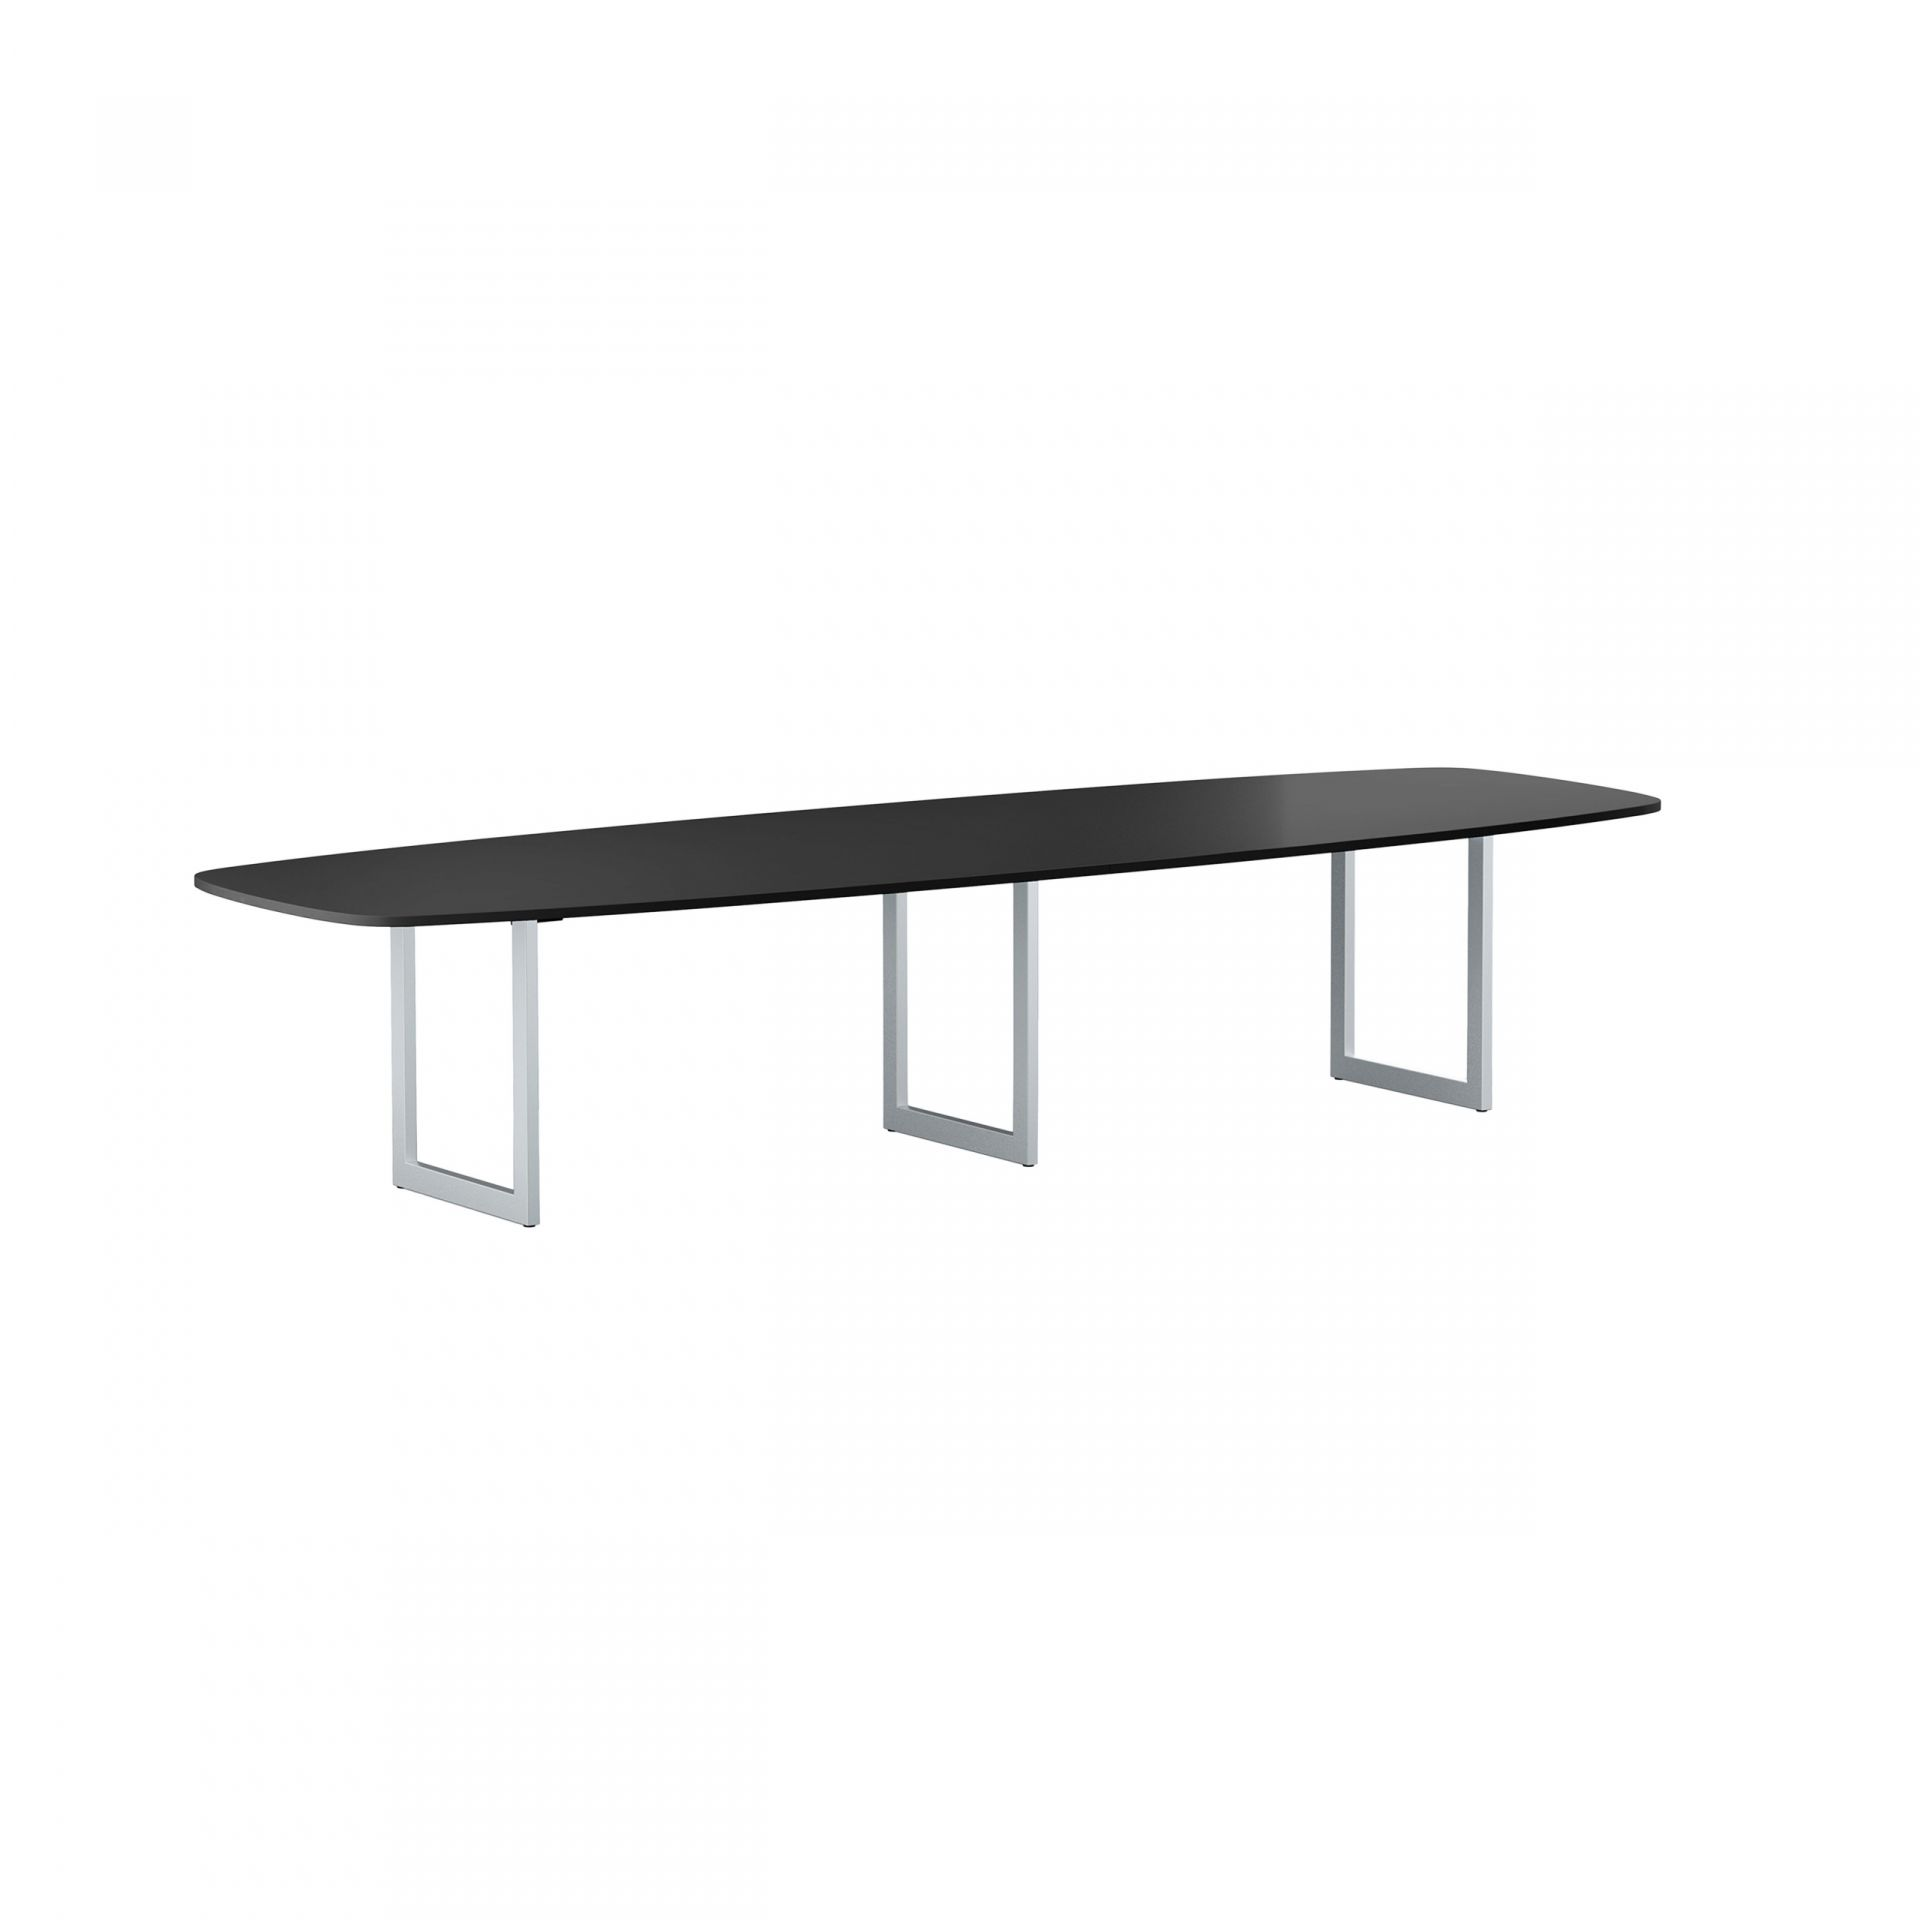 Collaborate Table with U-shaped metal legs